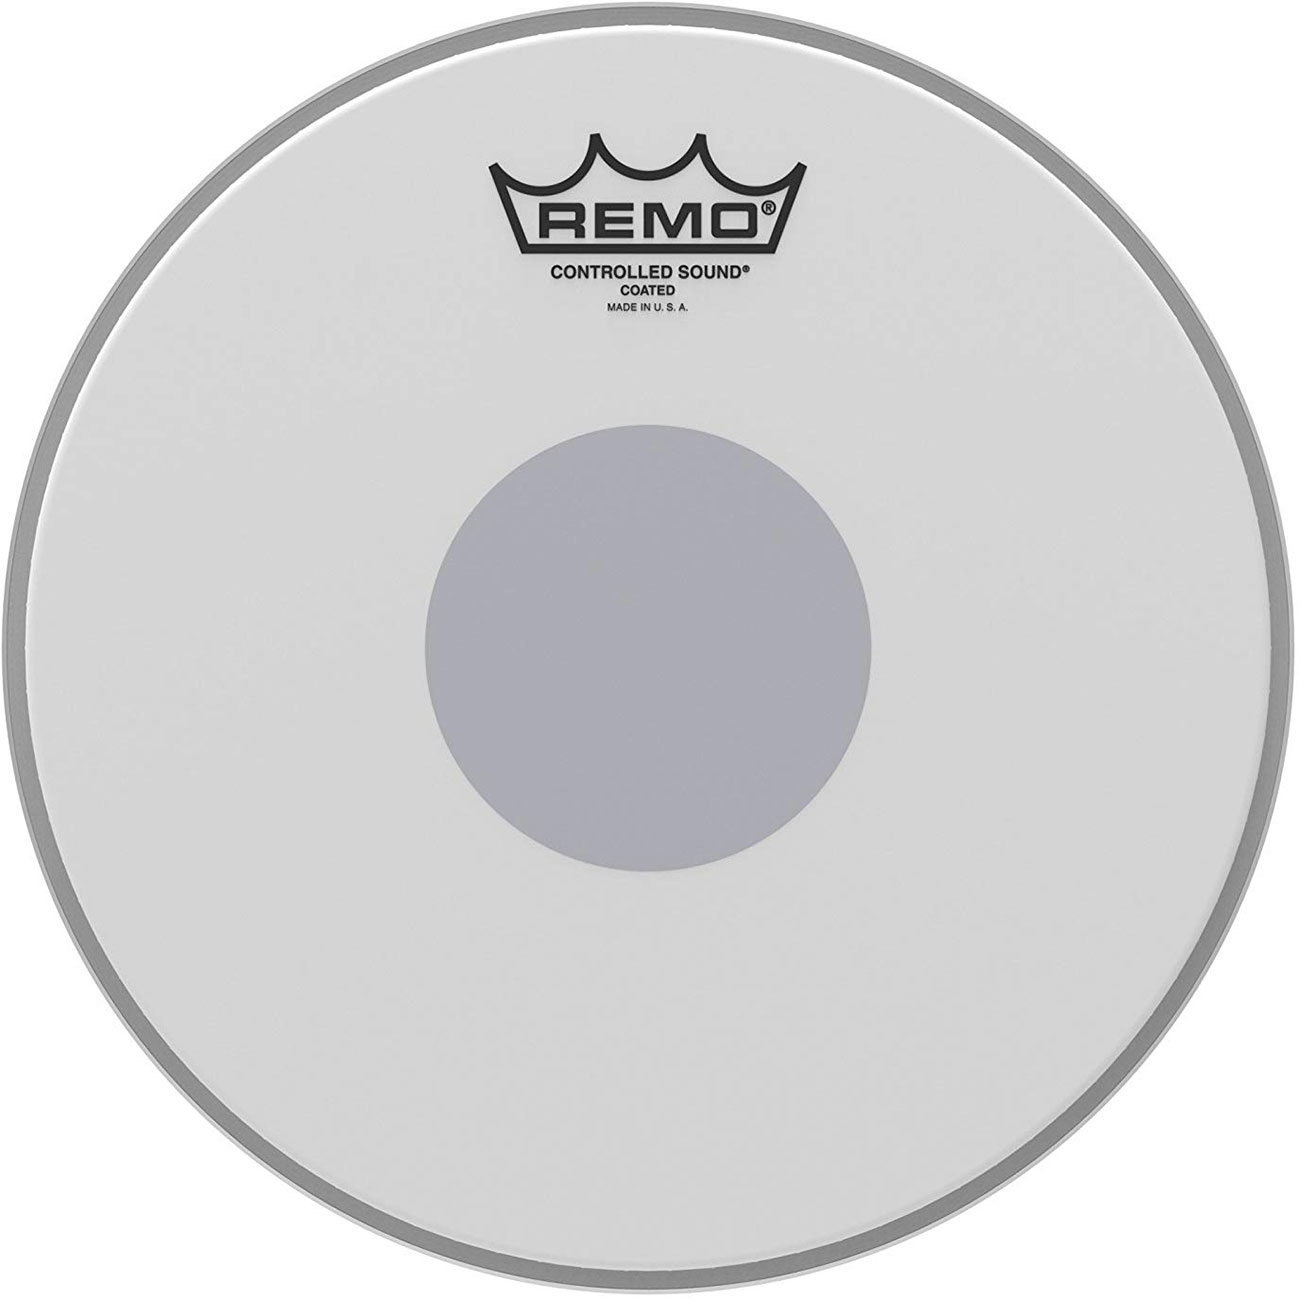 """Remo 18"""" Controlled Sound Coated Drum Head with Black Dot"""